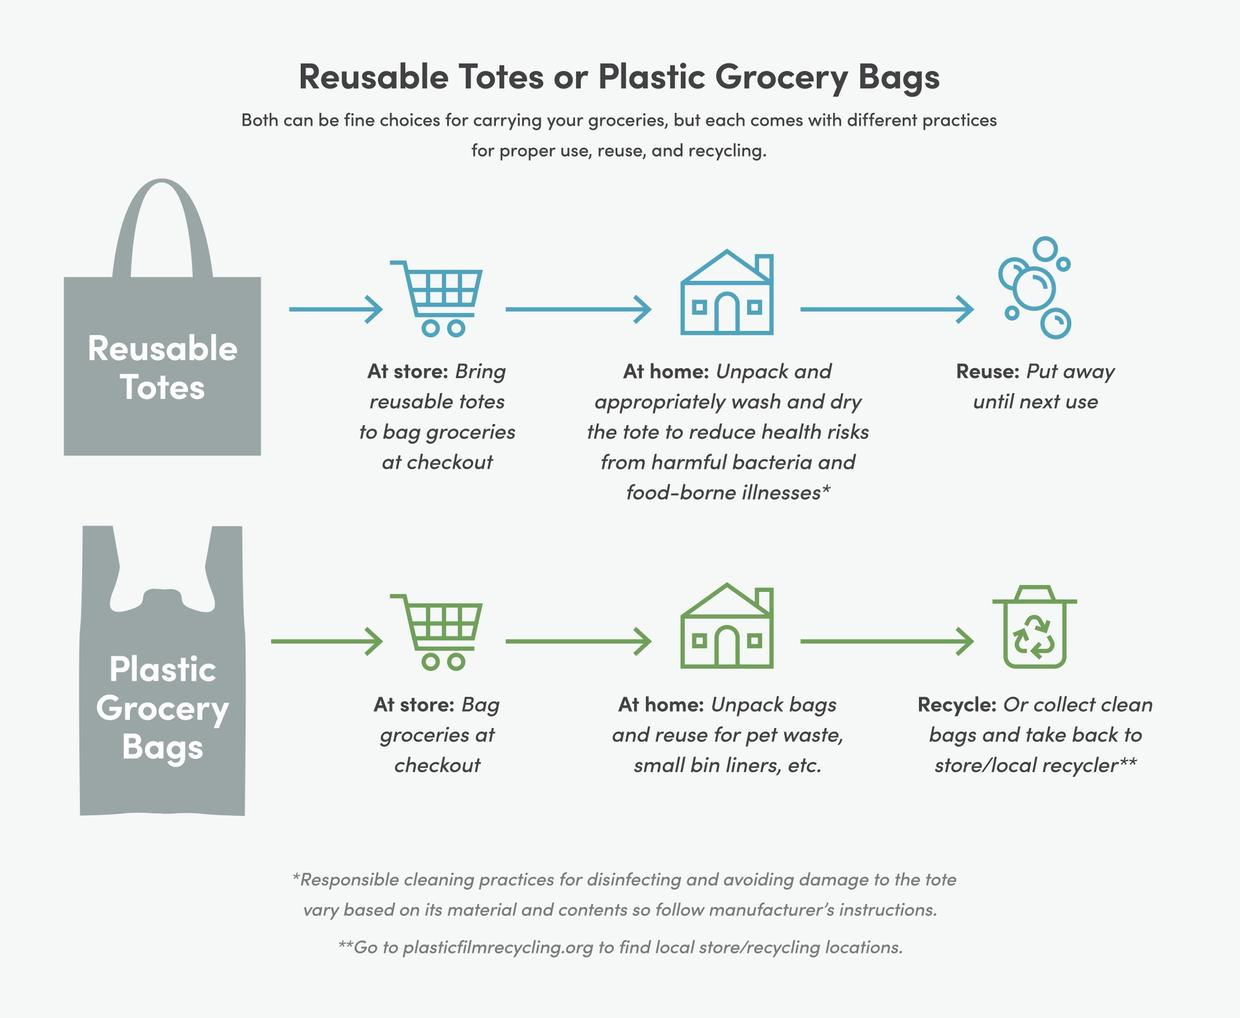 How to use reusable totes and plastic grocery bags